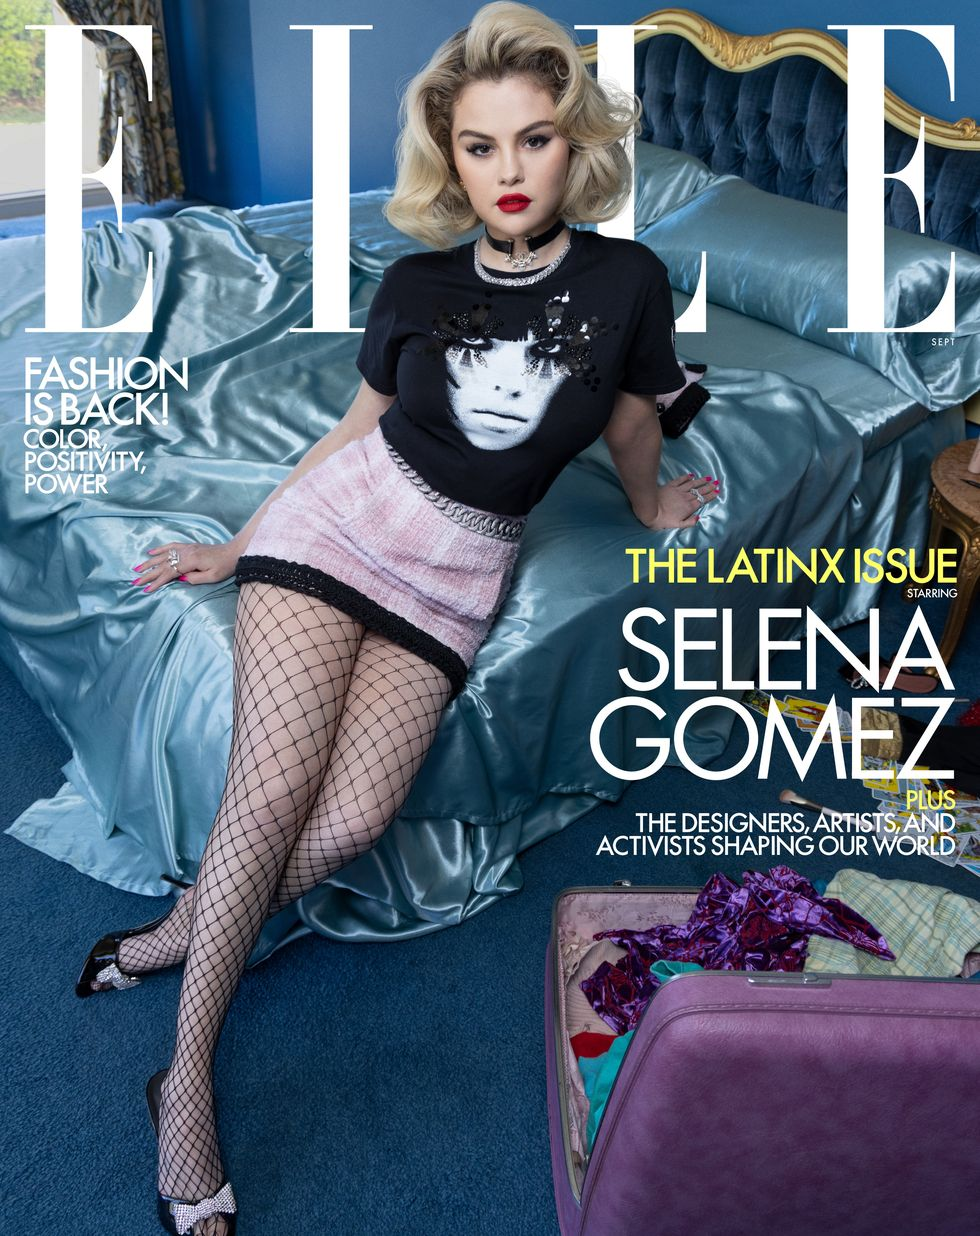 where to get Selena Gomez Elle September 2021 pink tweed skirt and black graphic t-shirt where to get Selena Gomez Elle September 2021 pink tweed skirt and black graphic t-shirt Photo INEZ & VINOODH